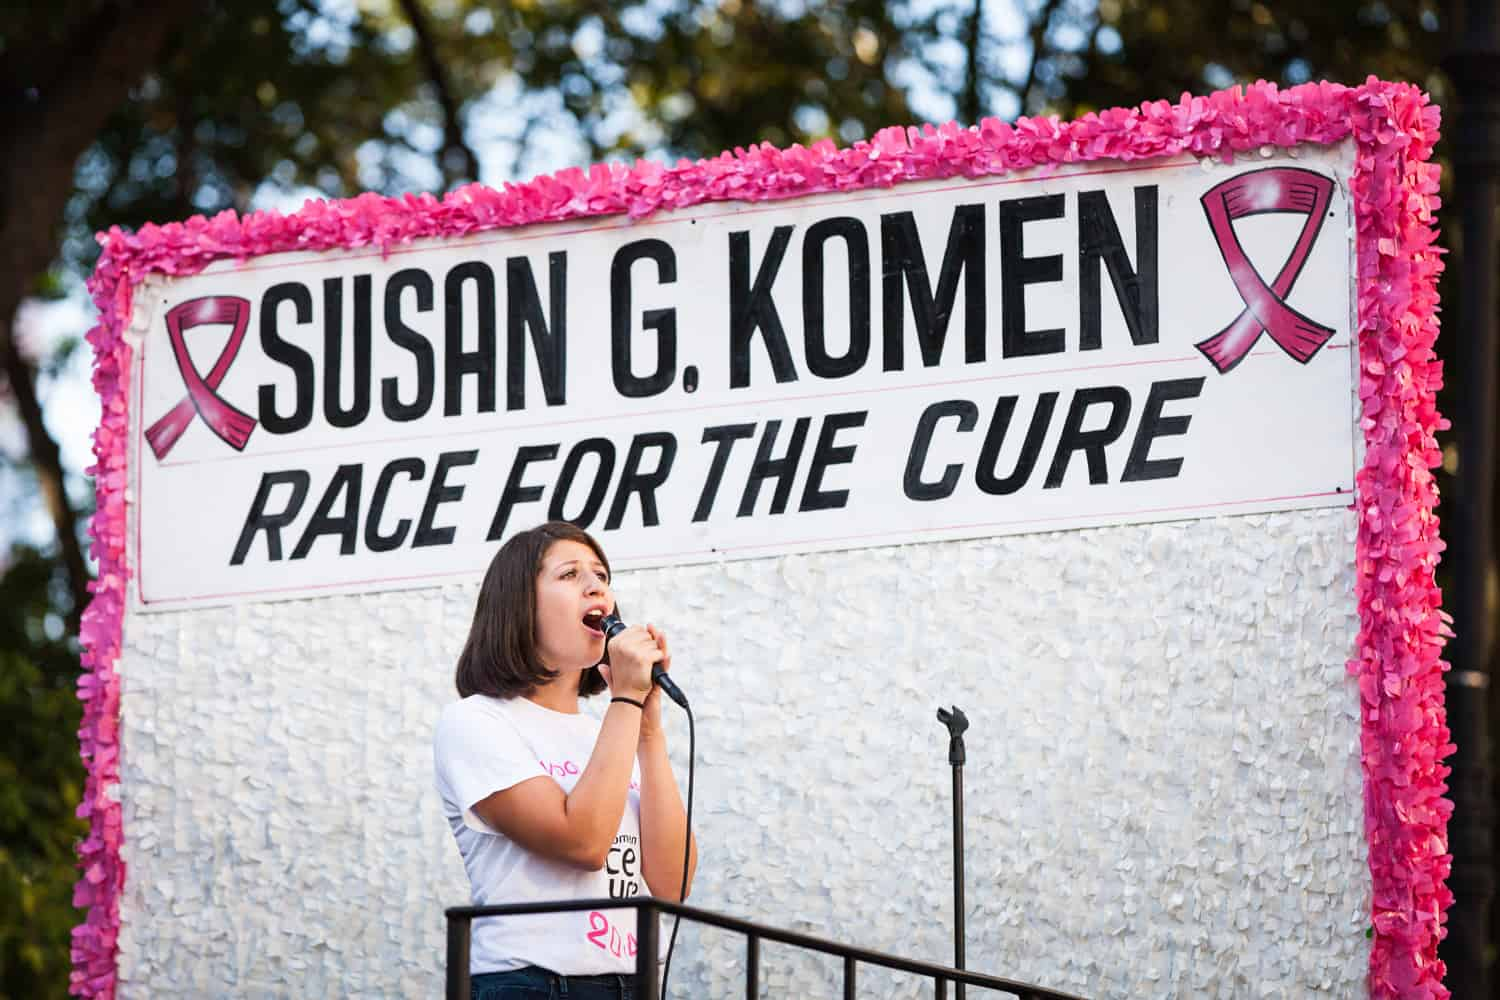 NYC Race for the Cure photos of woman singing on parade float